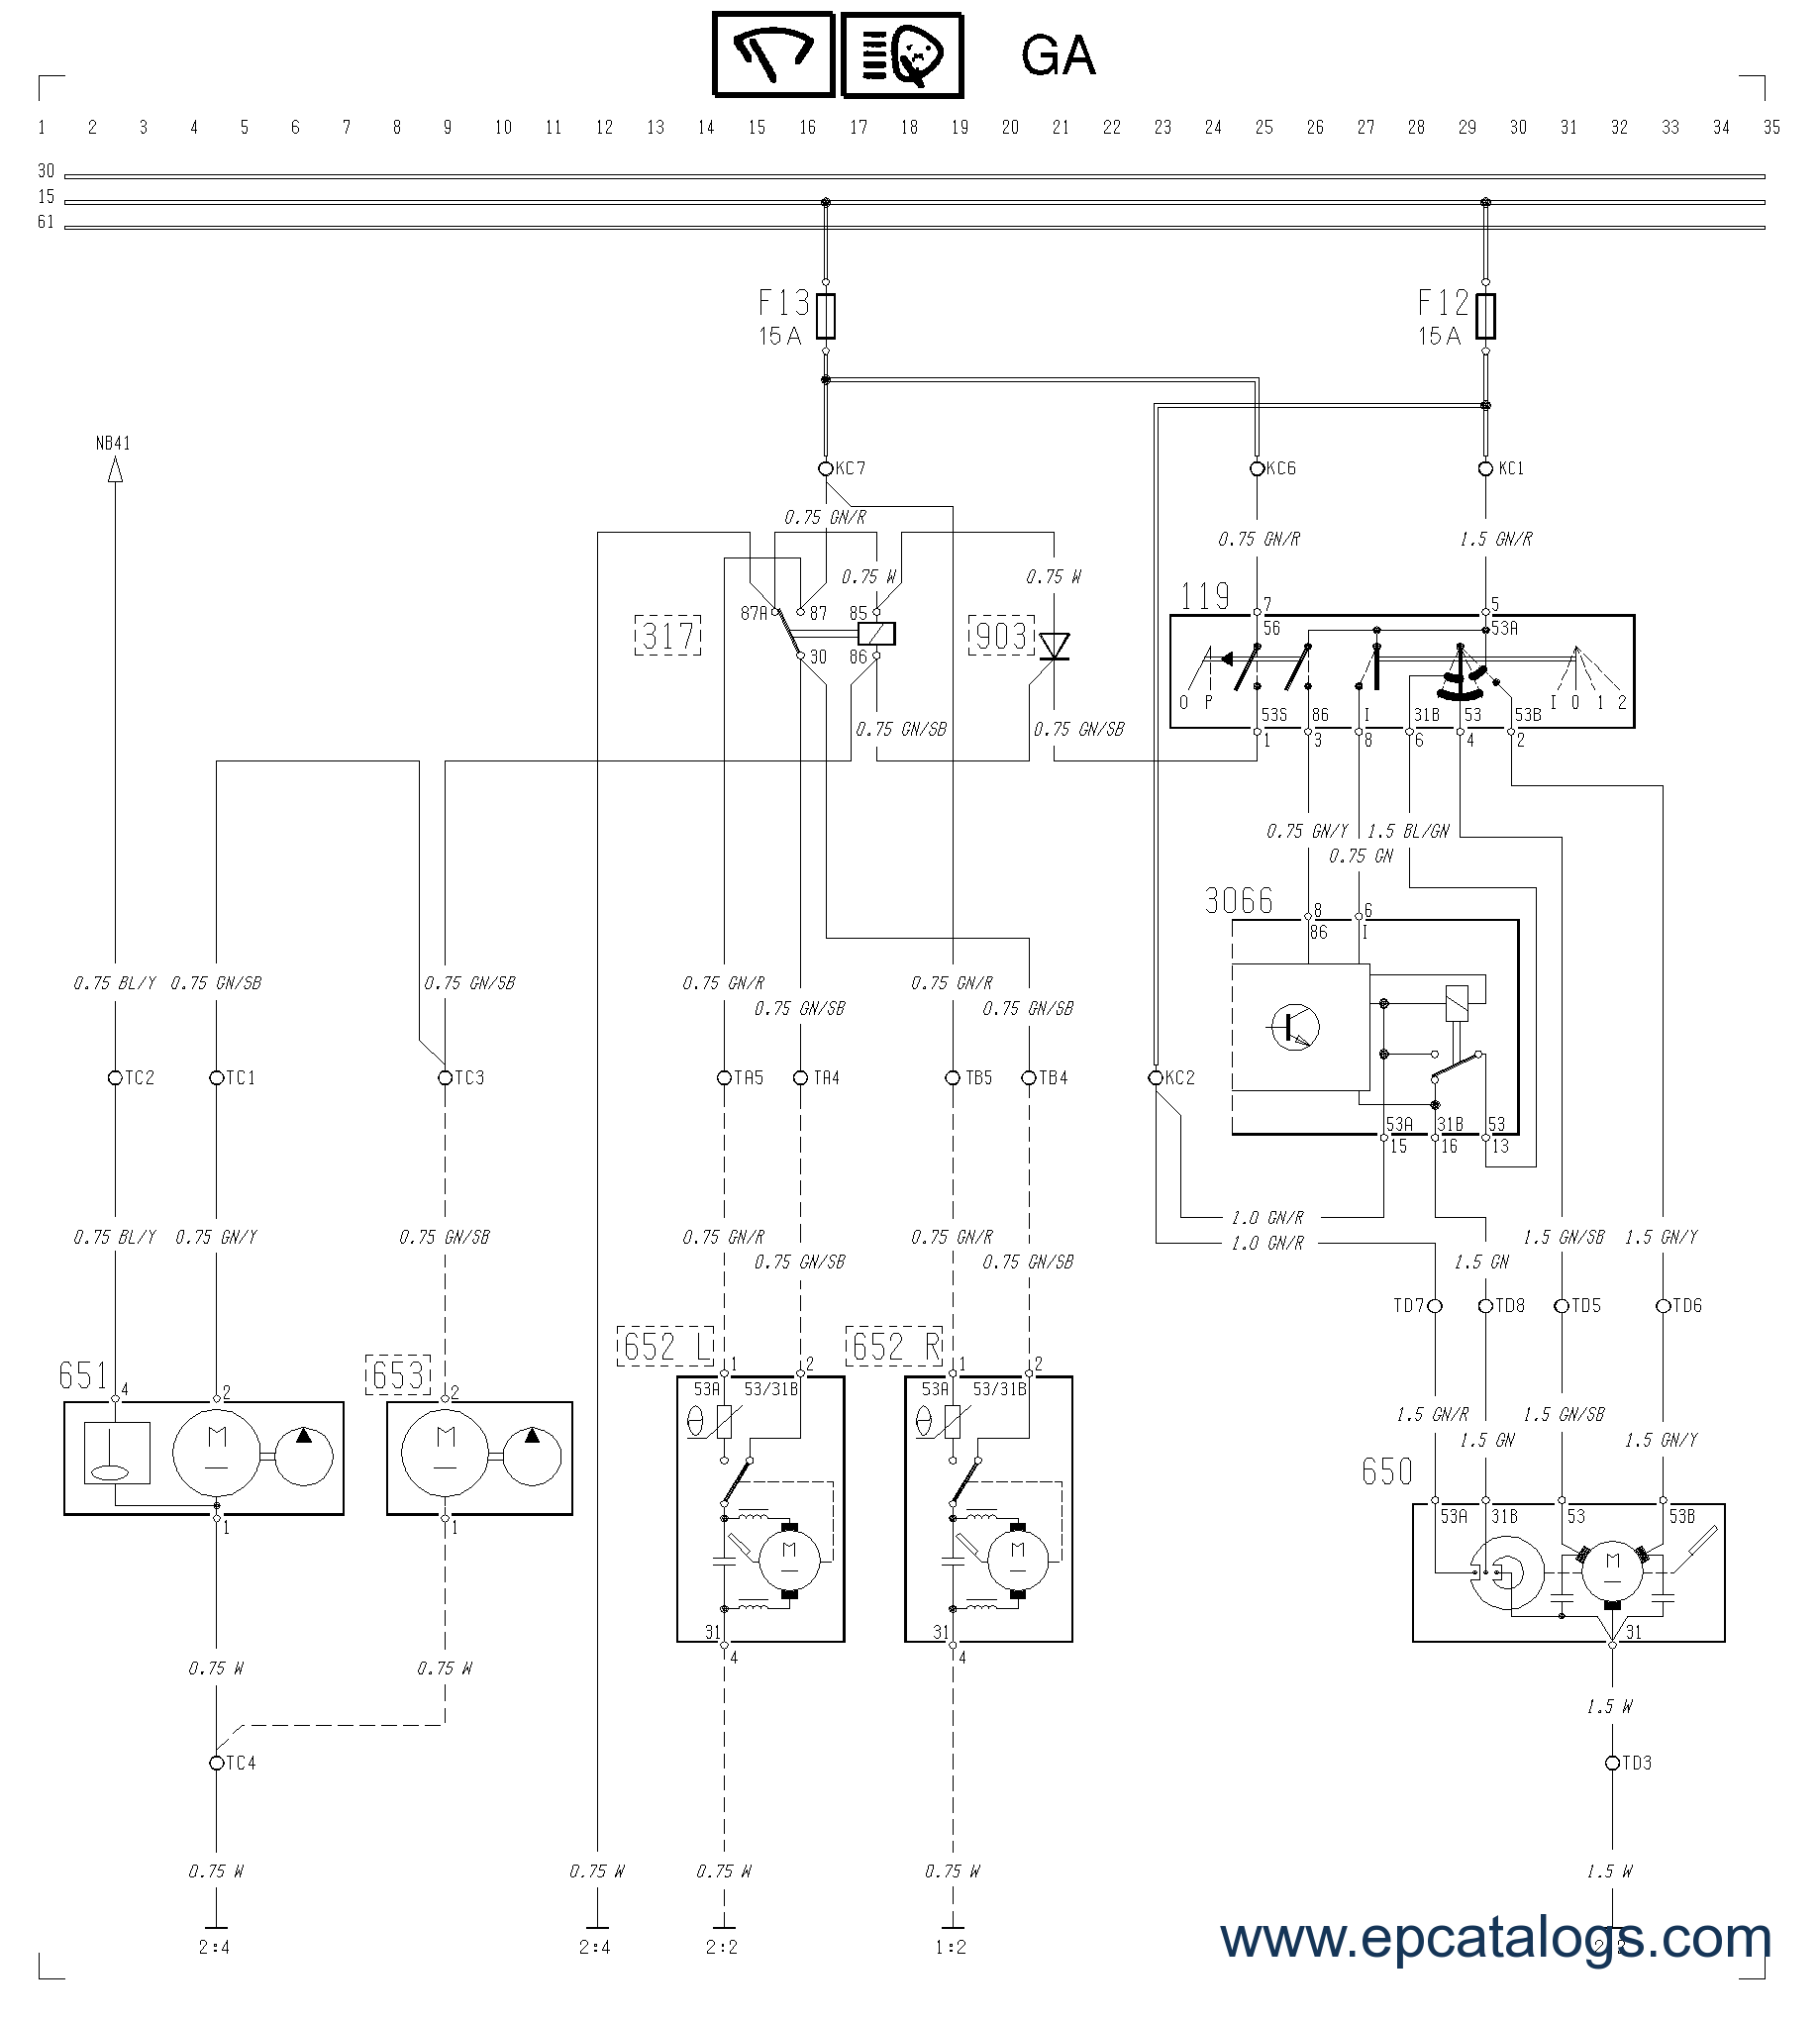 Volvo Impact 2010 Bus Lorry Wiring Diagram Fl10 Enlarge